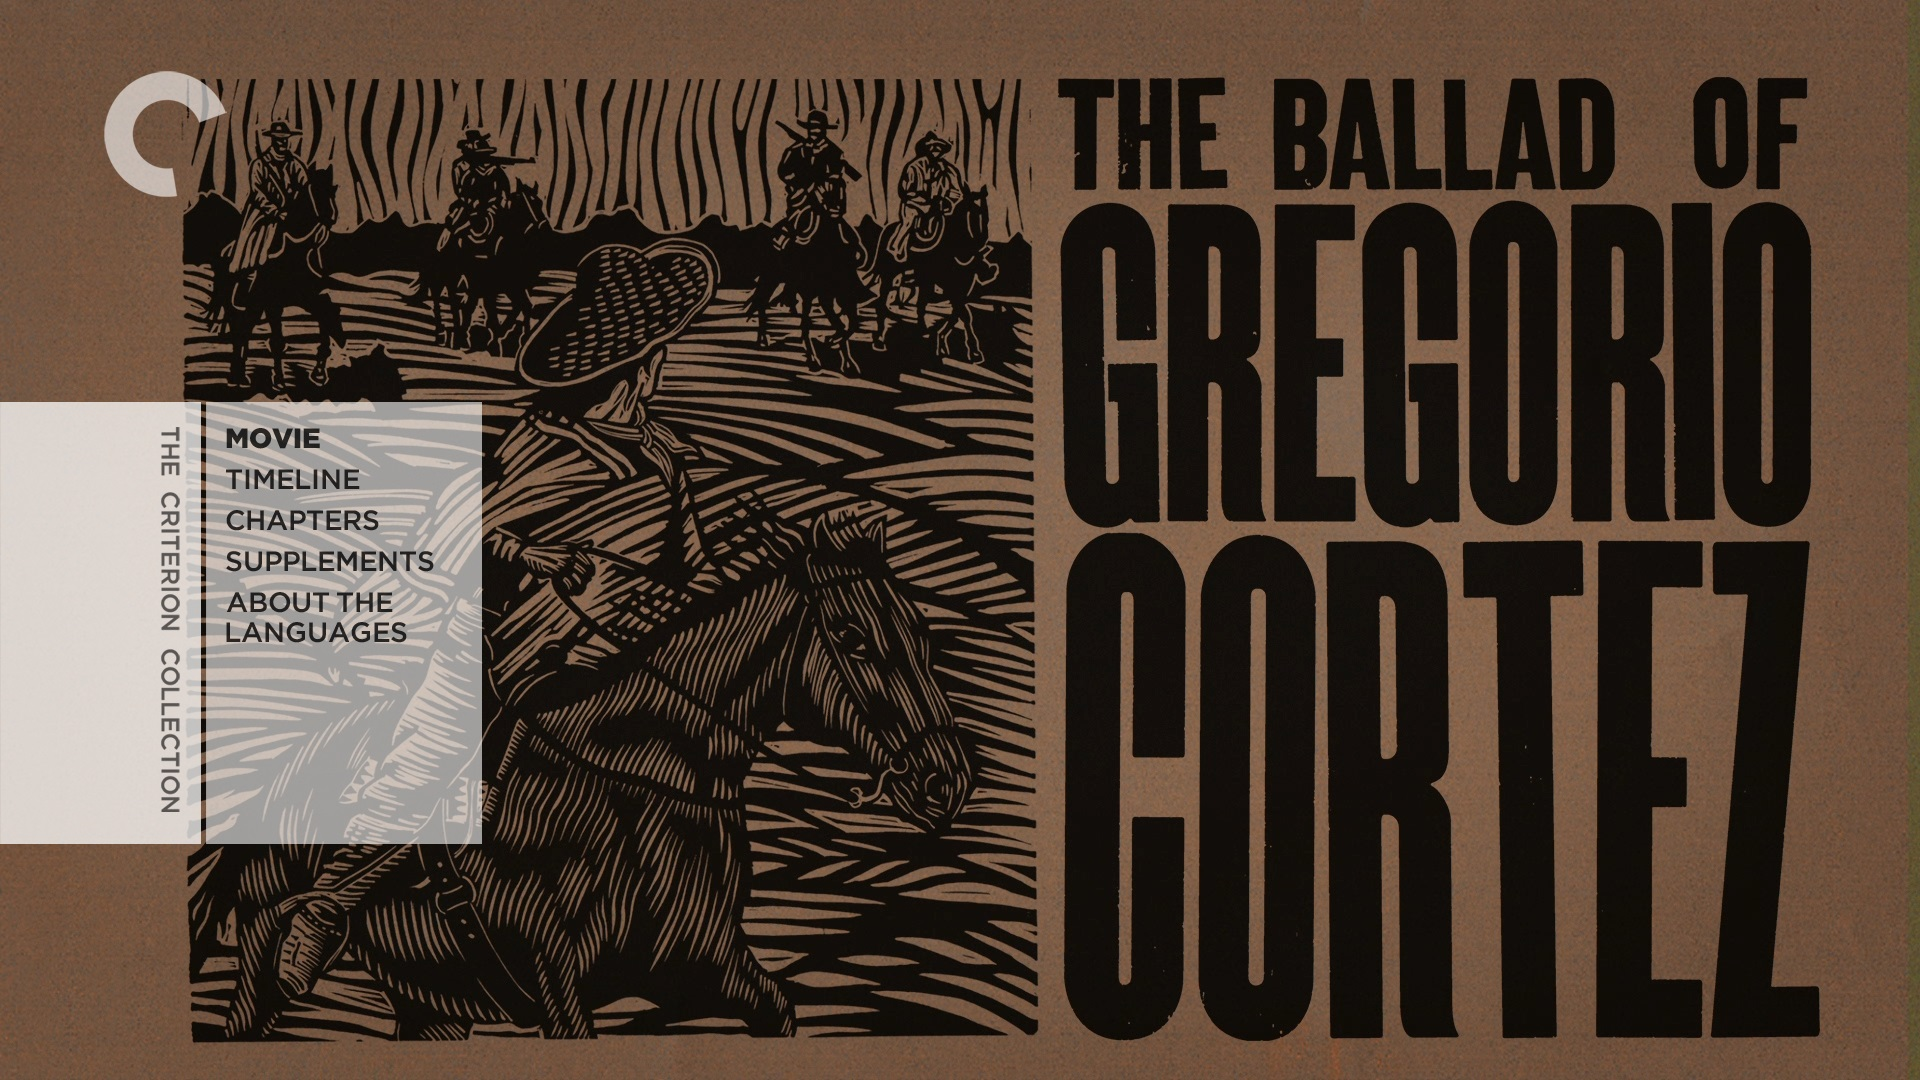 The Ballad of Gregorio Cortez (1982) [Criterion Collection]